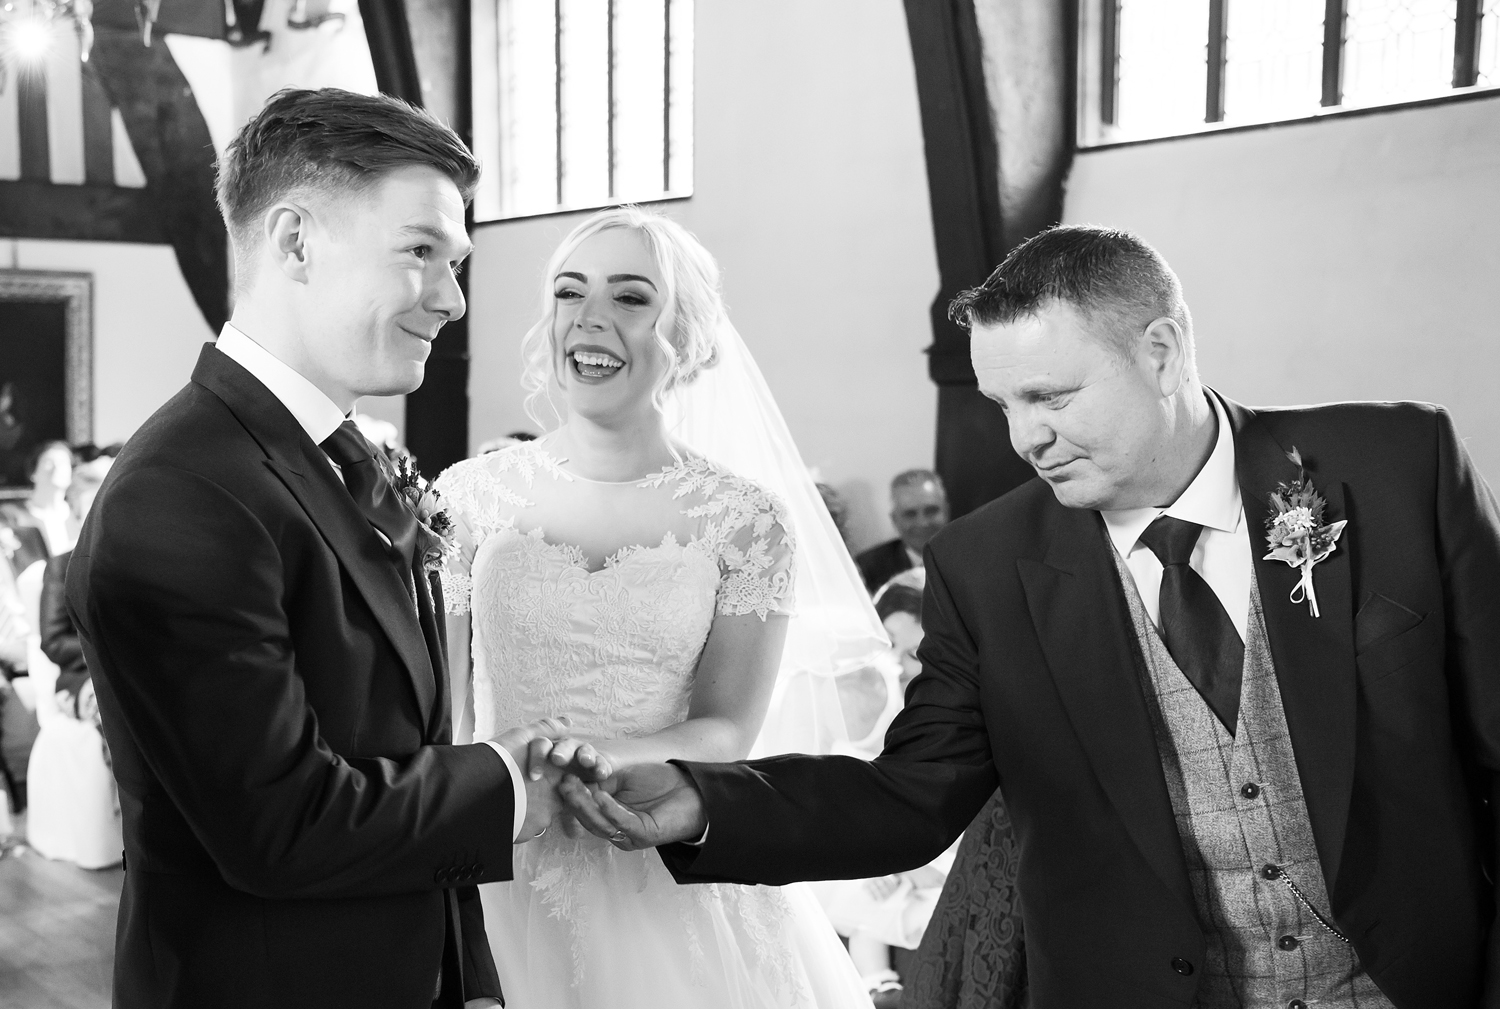 Father of the Bride hands over his Daughter's hand in marriage at Samlesbury Hall